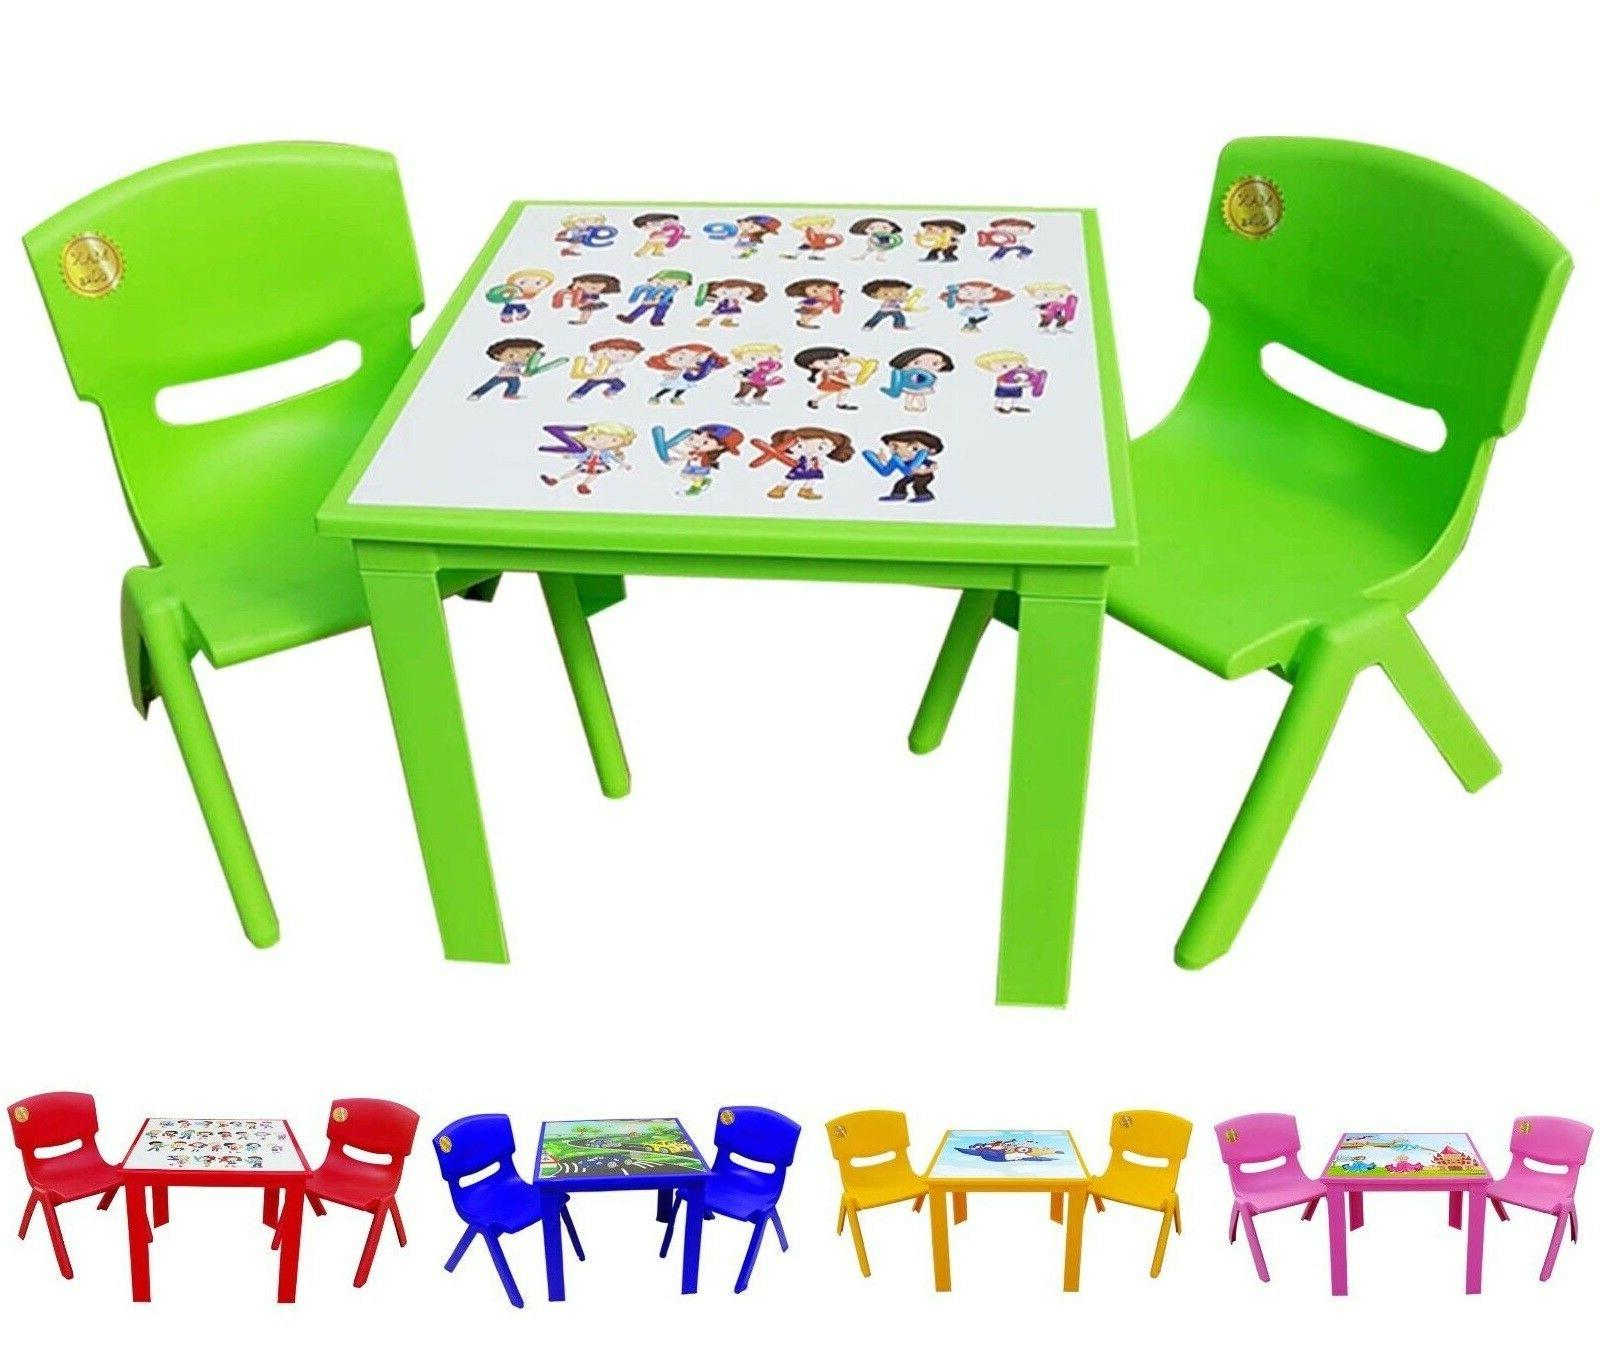 Table and Chairs set for Children and Activity